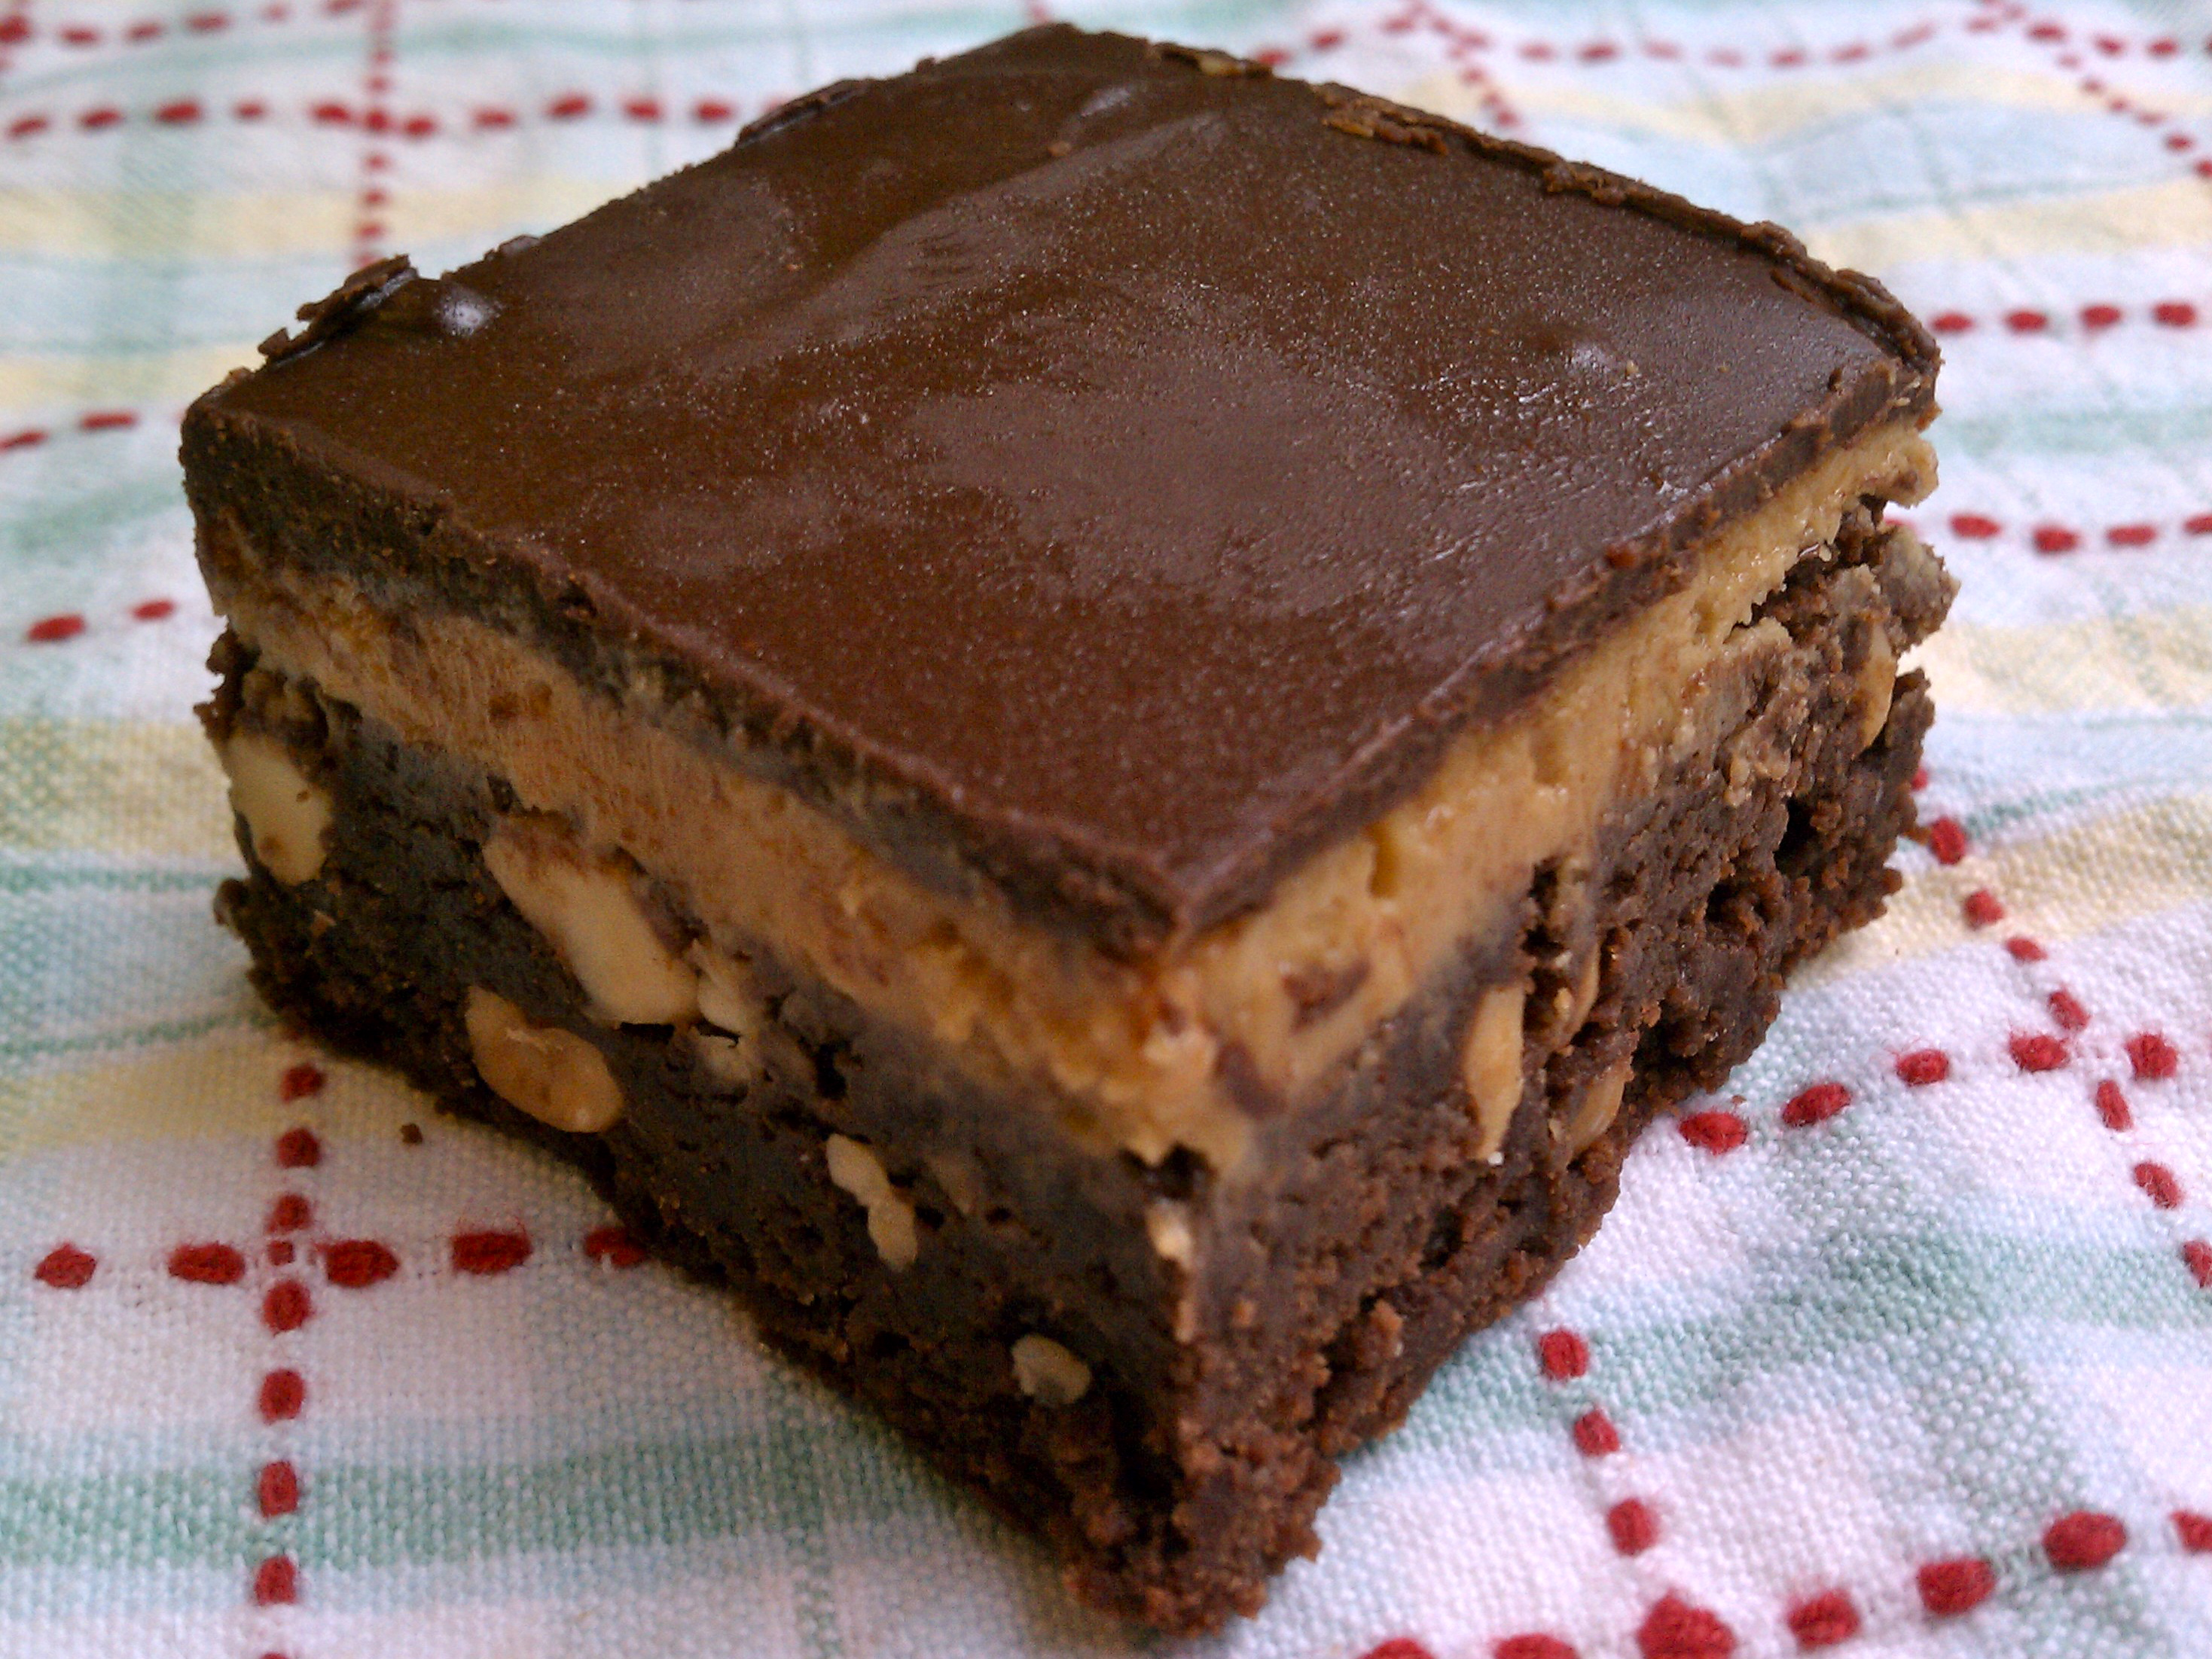 Fudgy Peanut Butter Brownies with Salted Peanuts